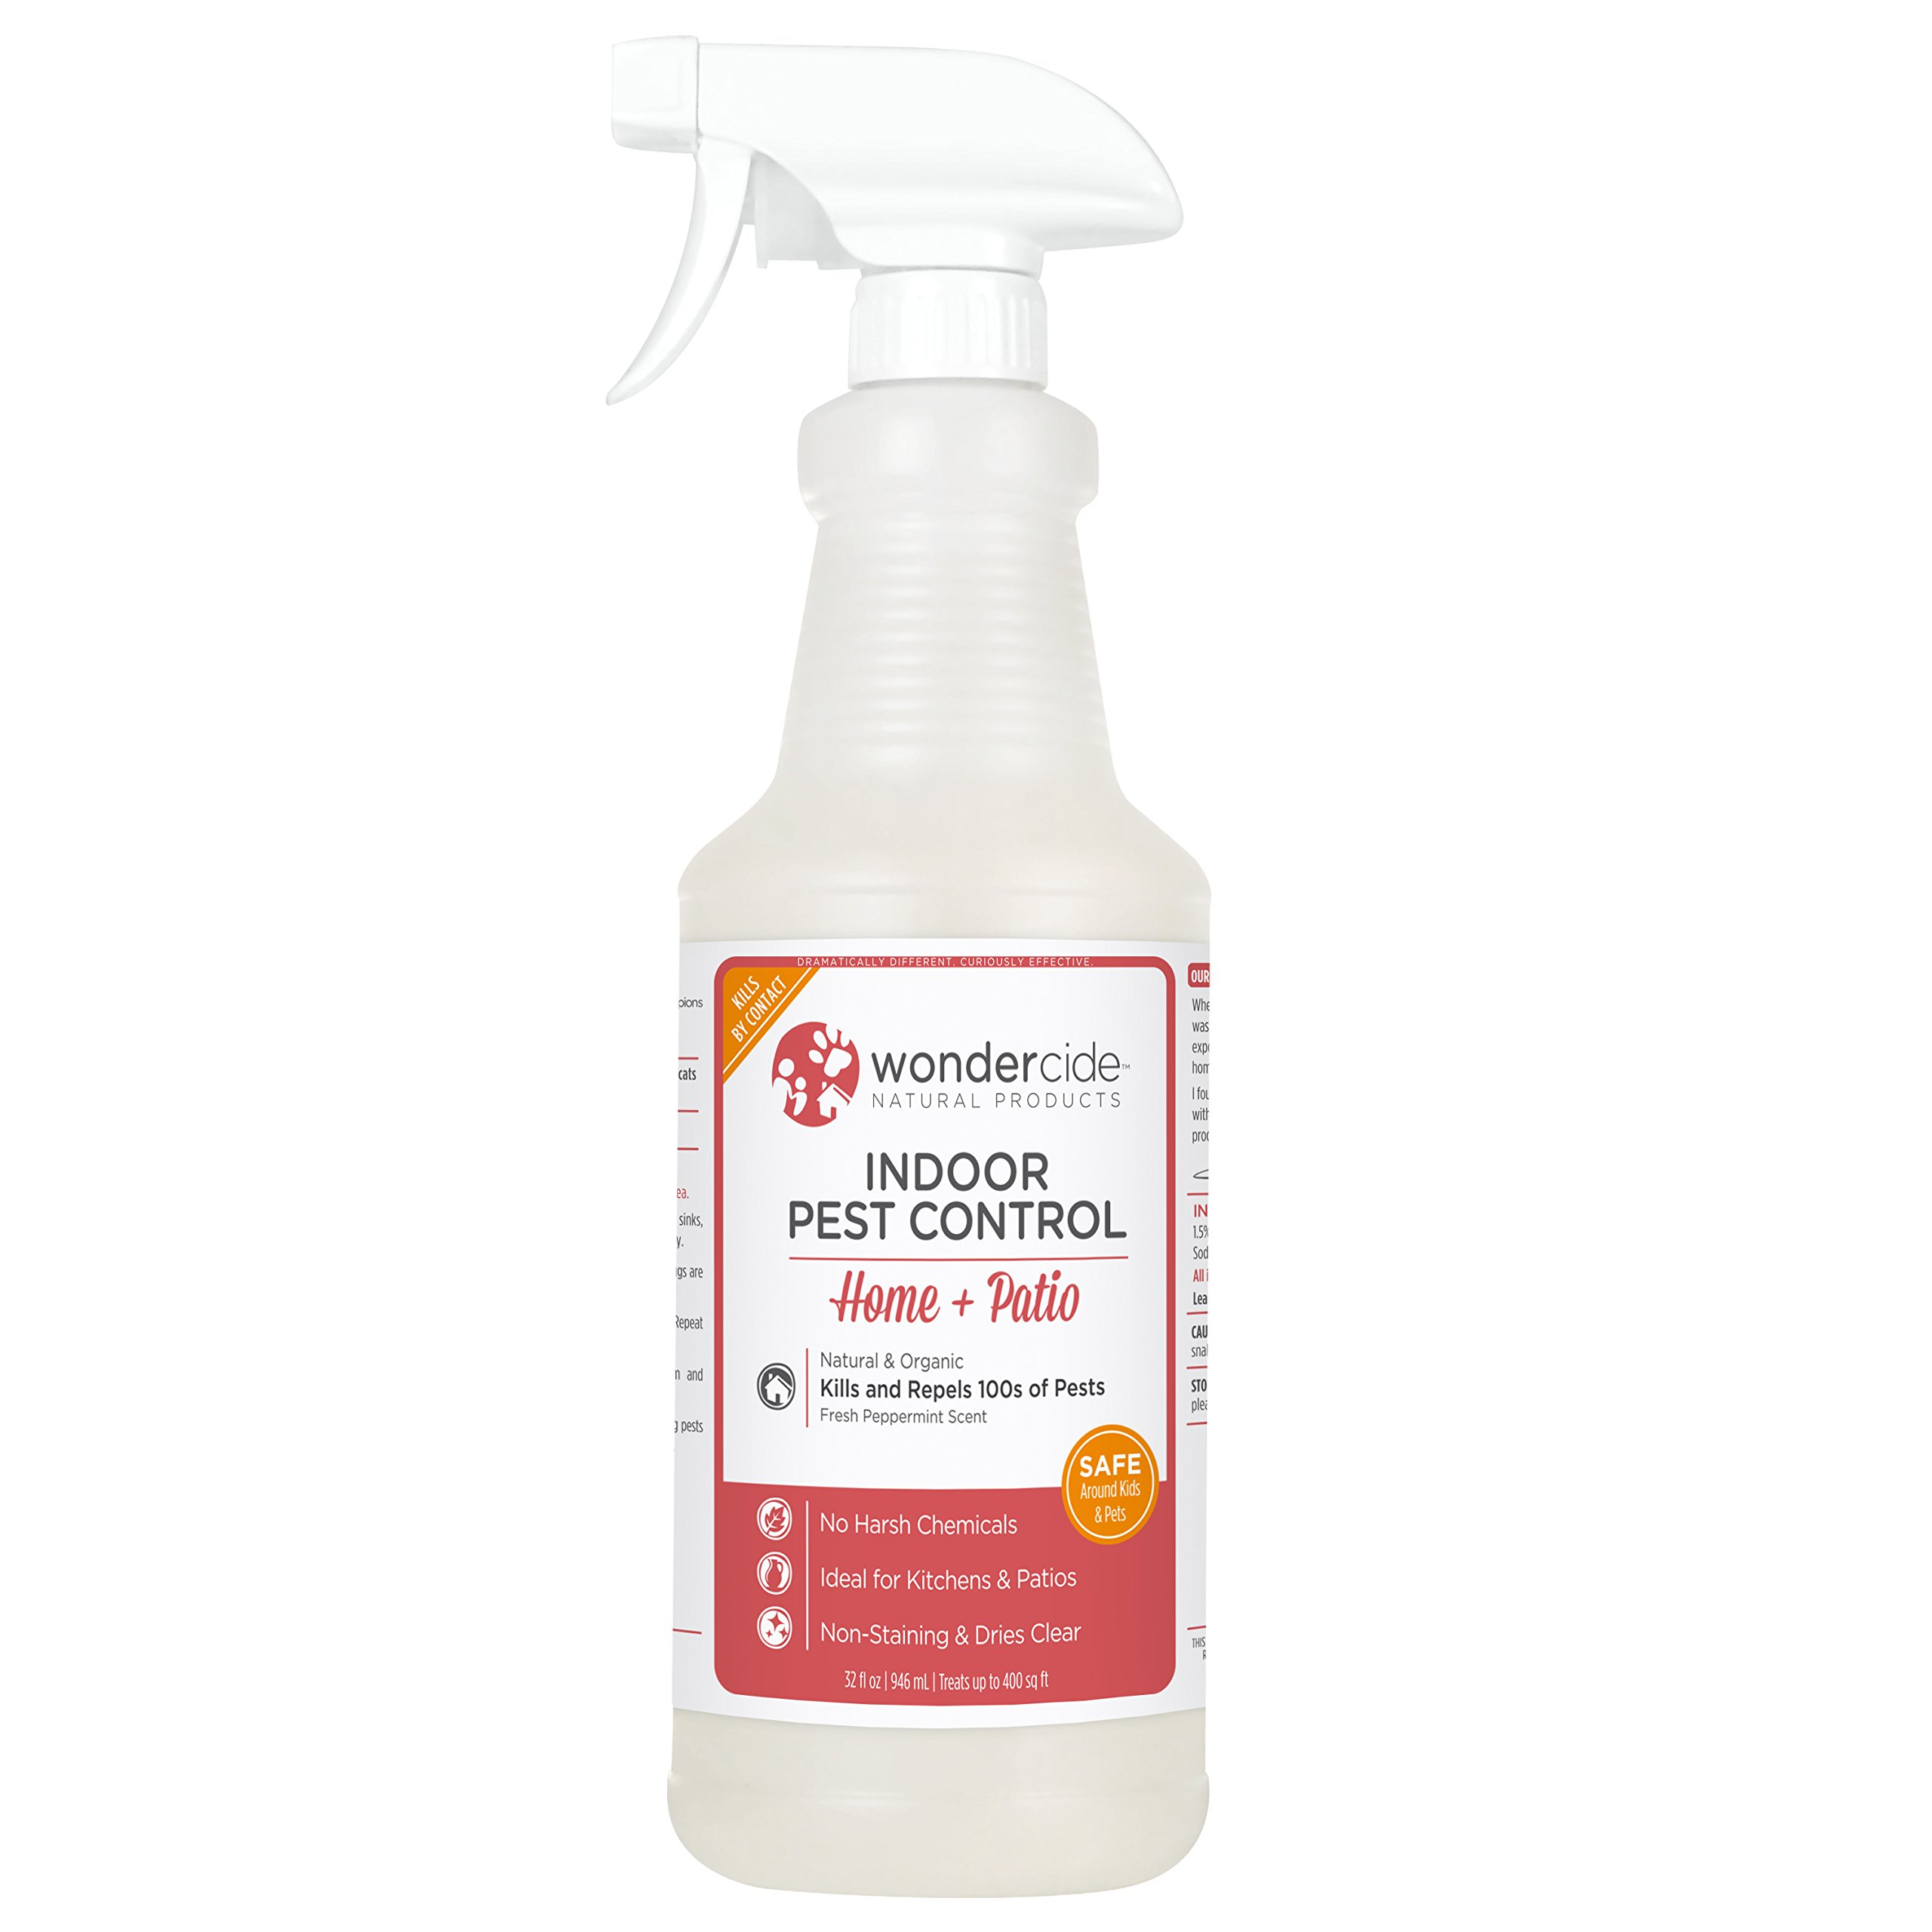 Wondercide Natural Indoor Pest Control Home and Patio Spray 32 oz Peppermint by Wondercide (Image #1)